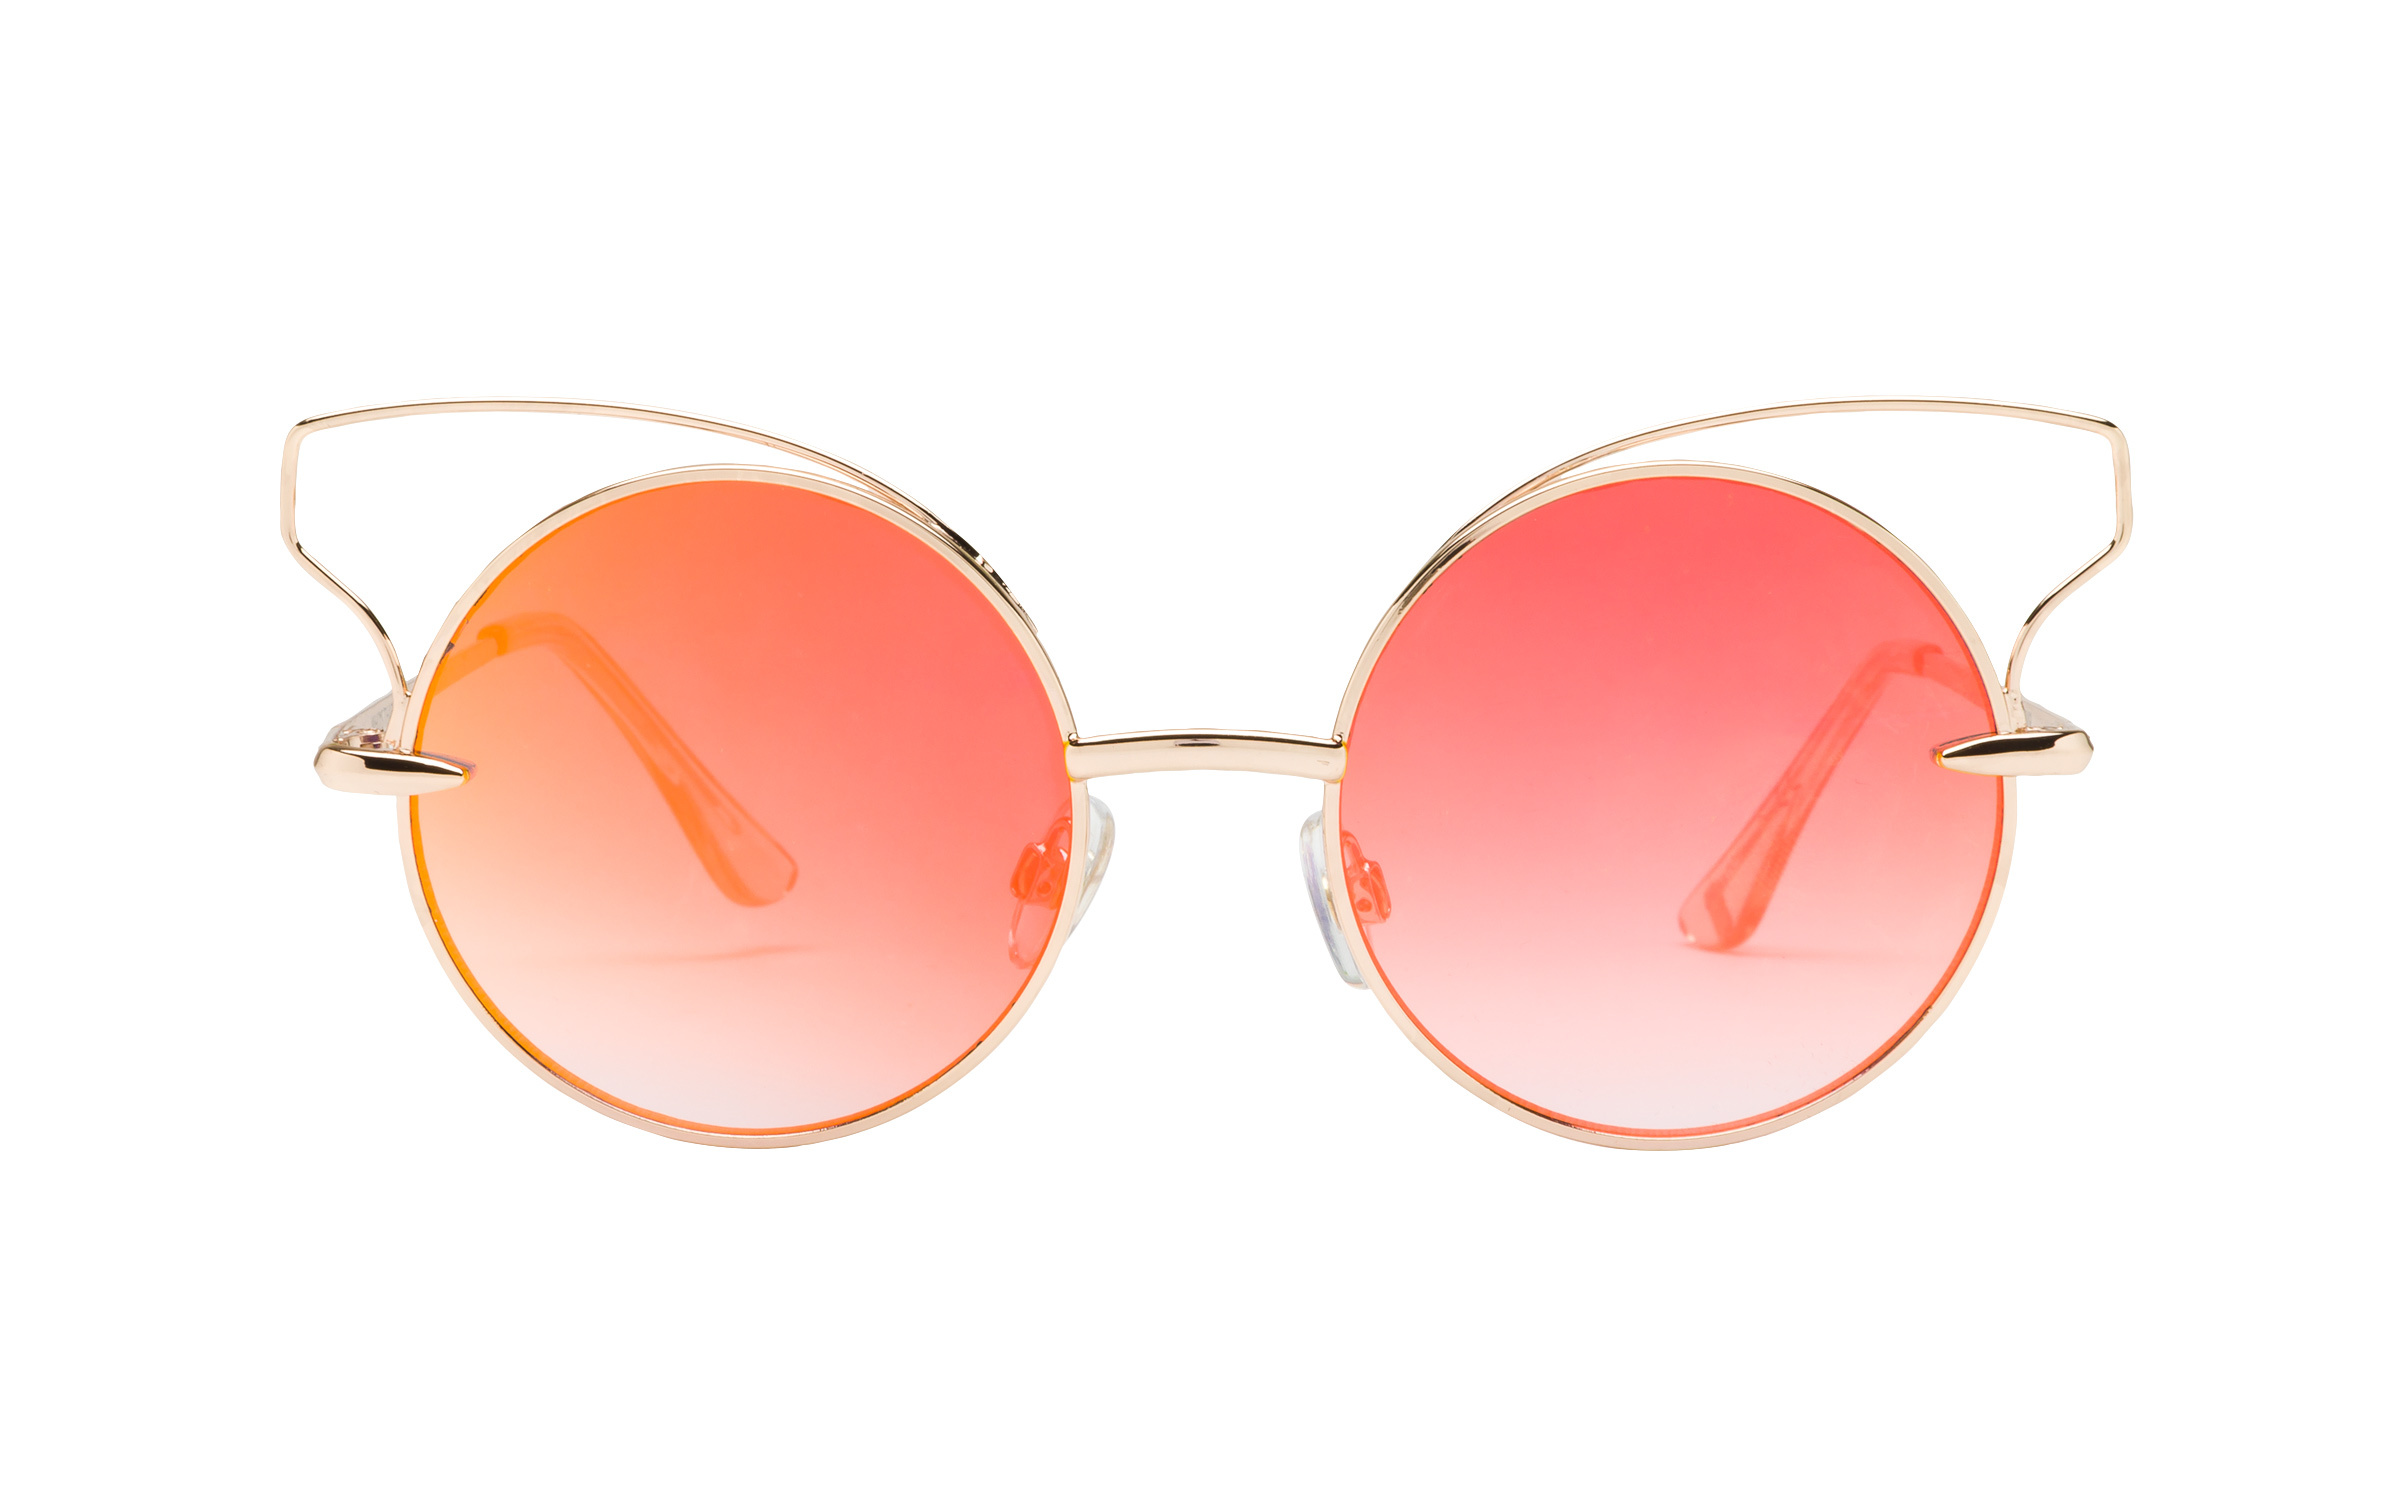 Foster Grant Gold Metal Sunglasses - Clearly Glasses Online